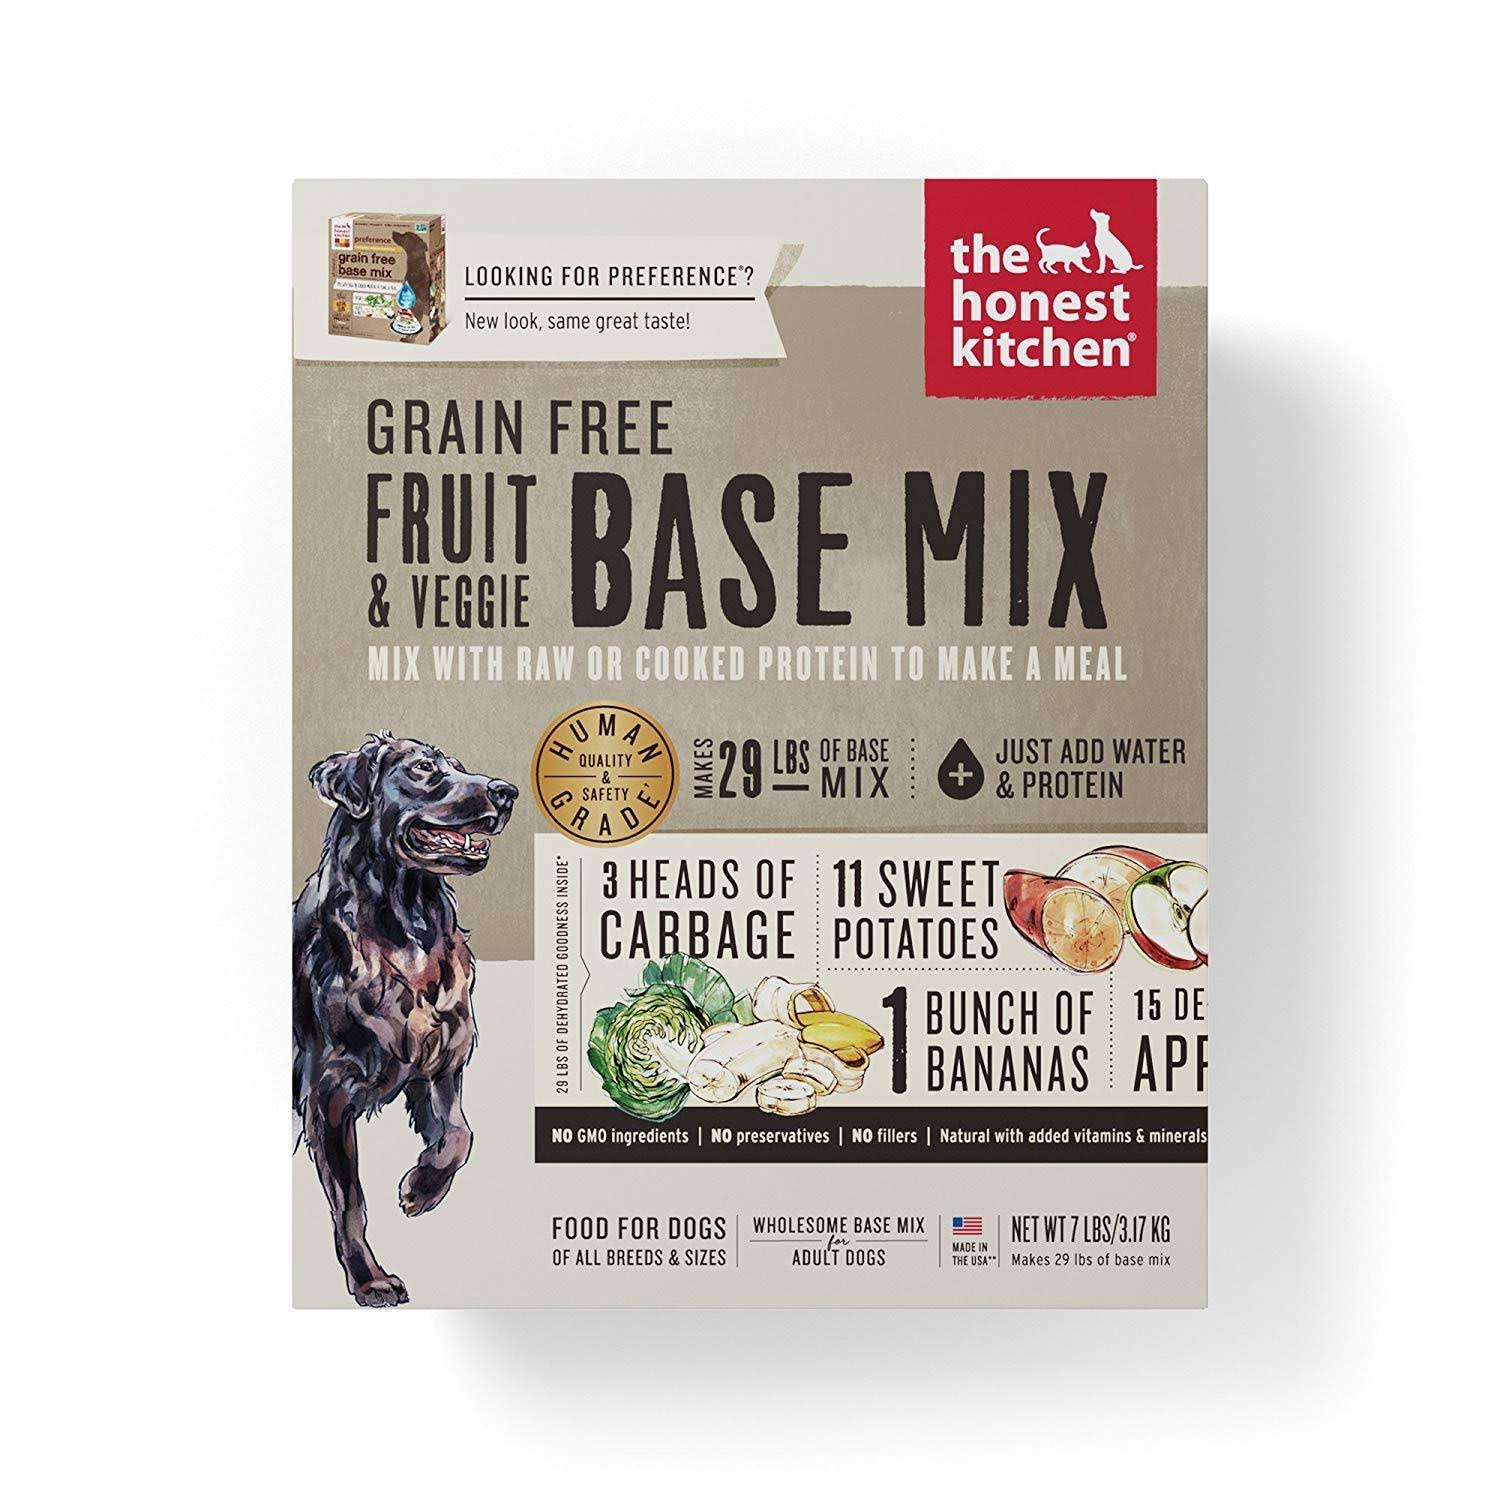 The Honest Kitchen Preference Base Mix 7lb Grain Free Dehydrated Dog Food